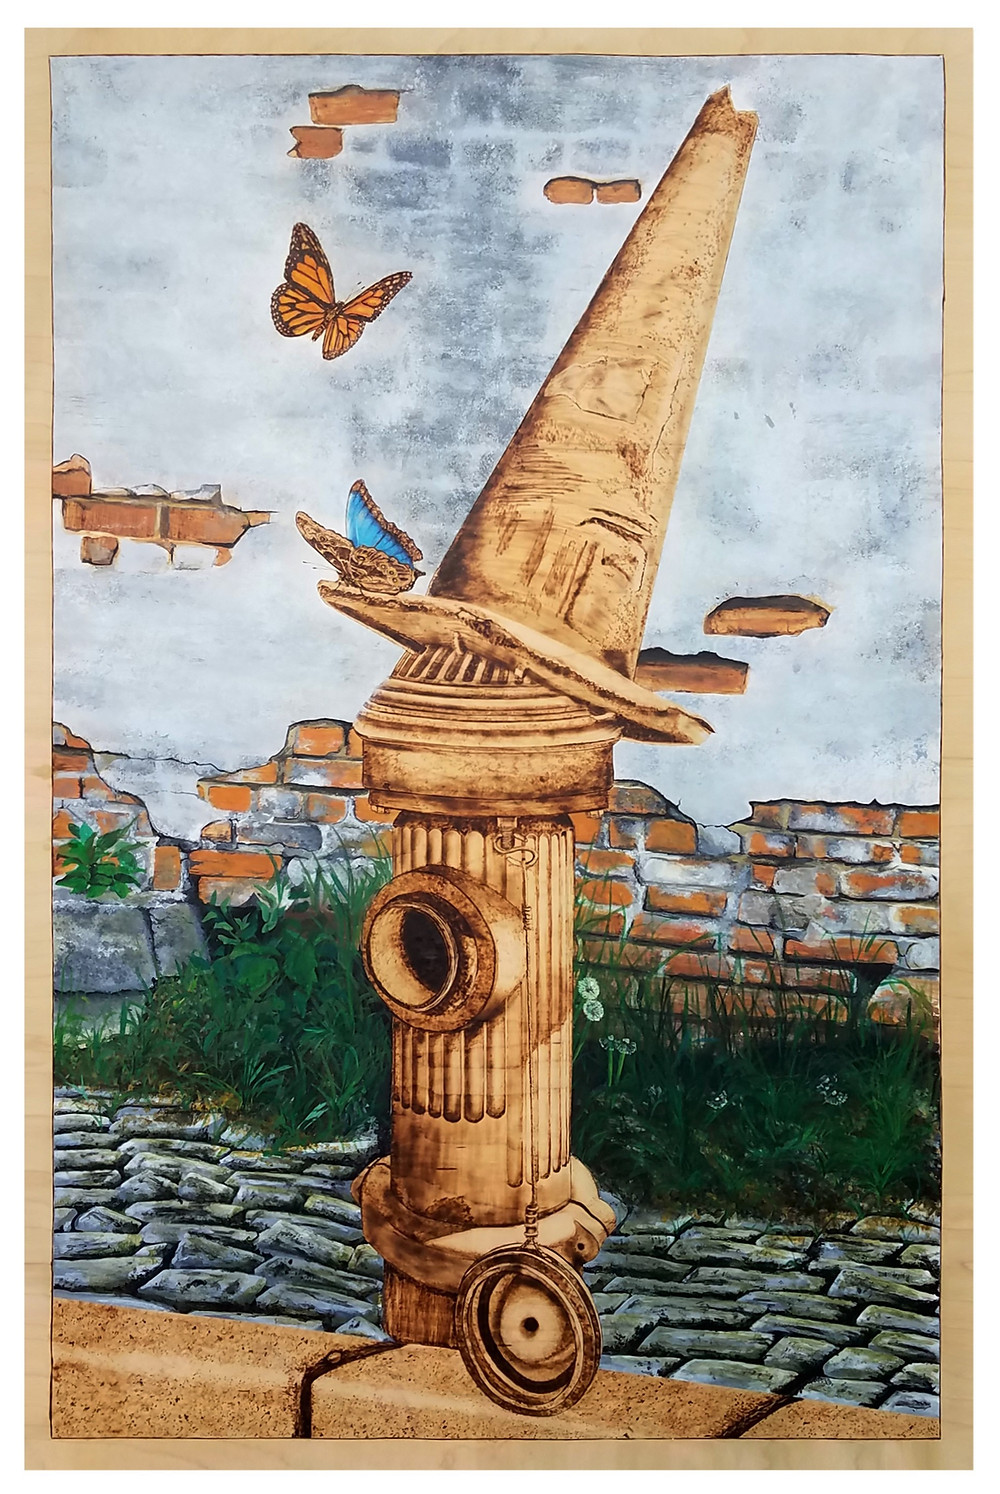 """""""Fire hydrant"""" (Something that we never notice) Pyrography, wood carving, acrylic acid and watercolor on cabinet grade maple plywood 122 x 81.2 x 3.175 cm"""